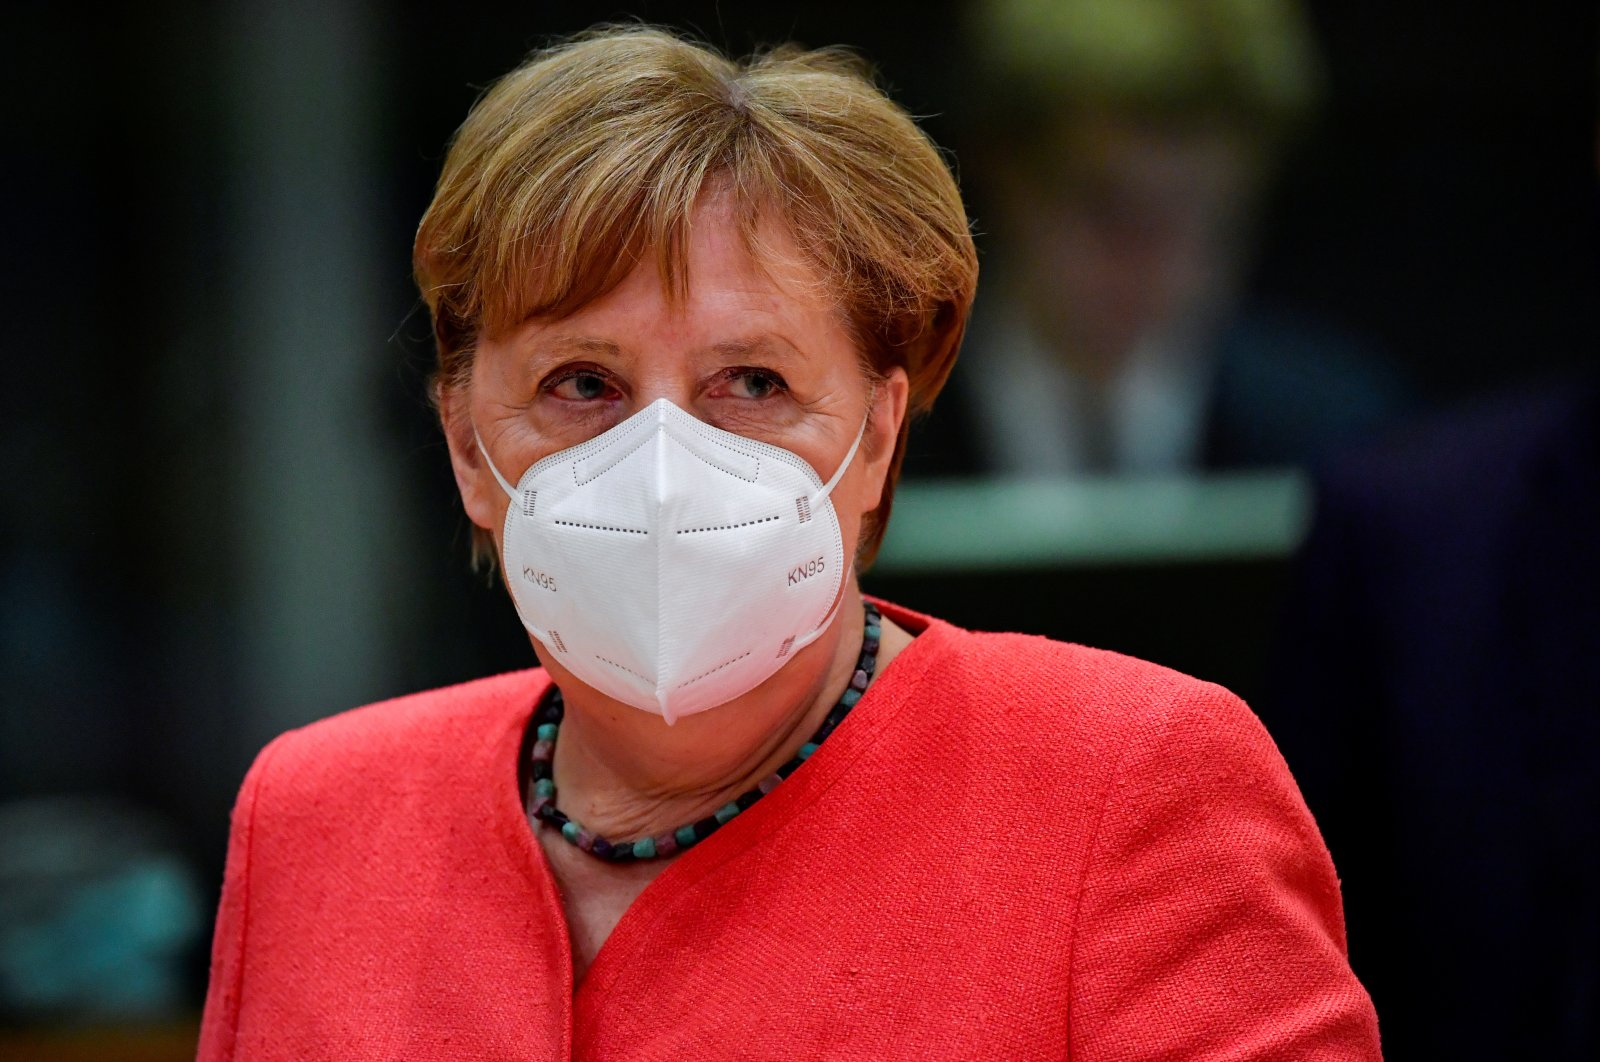 German Chancellor Angela Merkel looks on during the first face-to-face European Union summit since the coronavirus outbreak, in Brussels, Belgium, July 20, 2020. (Reuters Photo)